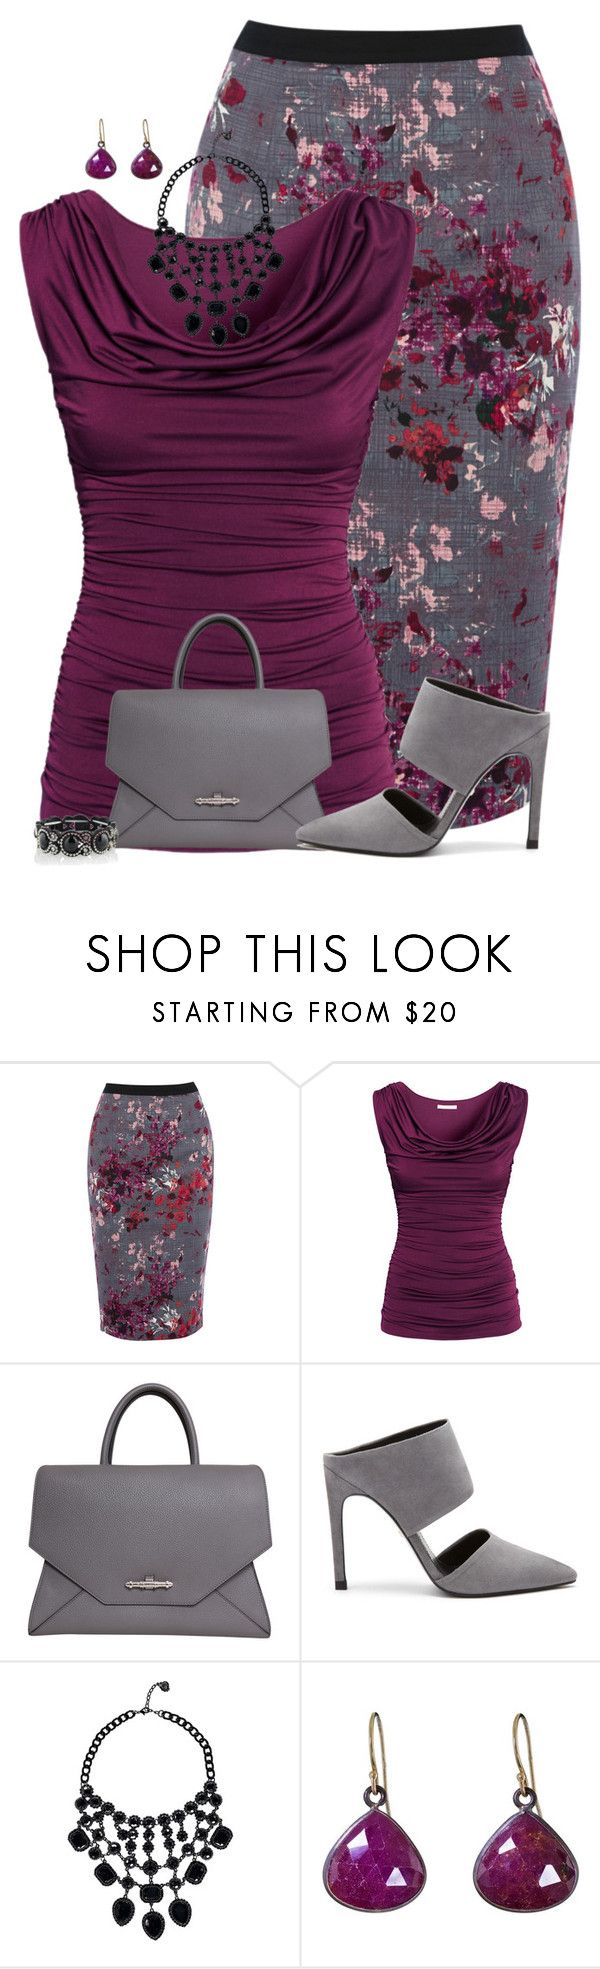 """""""Floral Pencil Skirt"""" by maggiesuedesigns ❤ liked on Polyvore featuring Oasis, H&M, Givenchy, Whistles, Boohoo and Solow"""